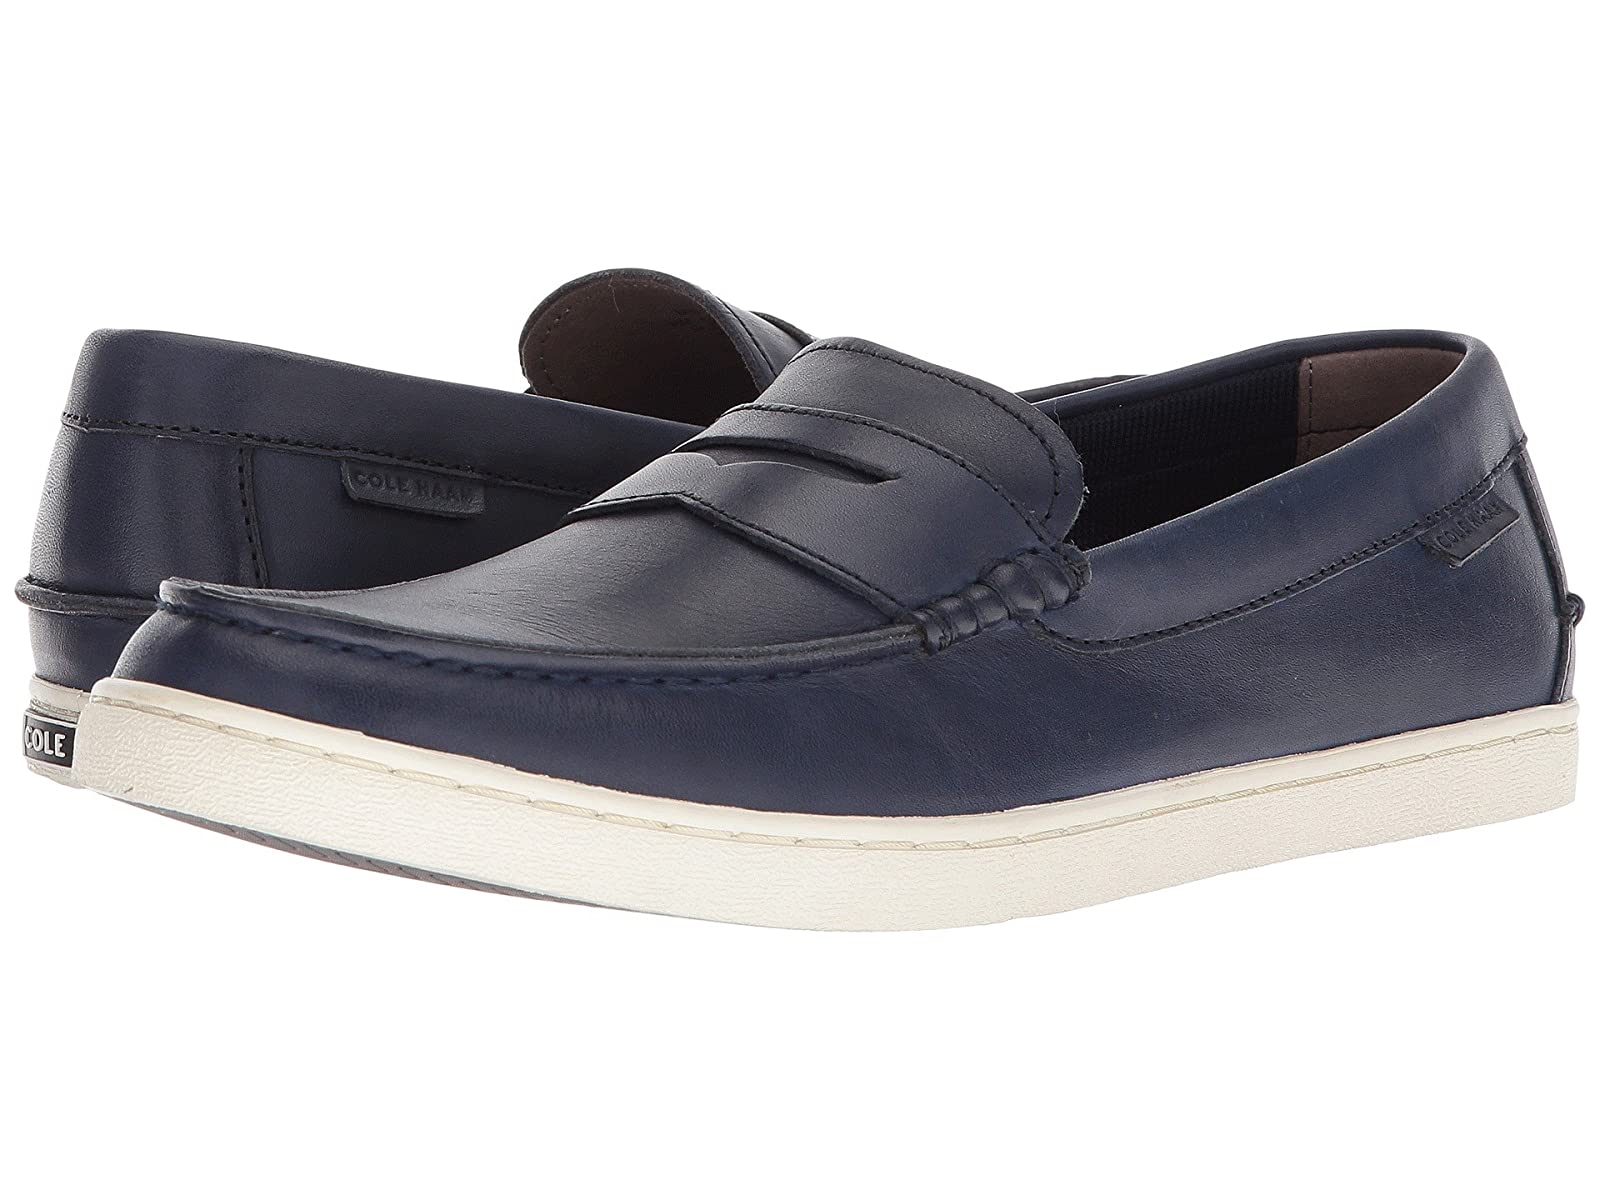 Cole Haan Nantucket Loafer IICheap and distinctive eye-catching shoes